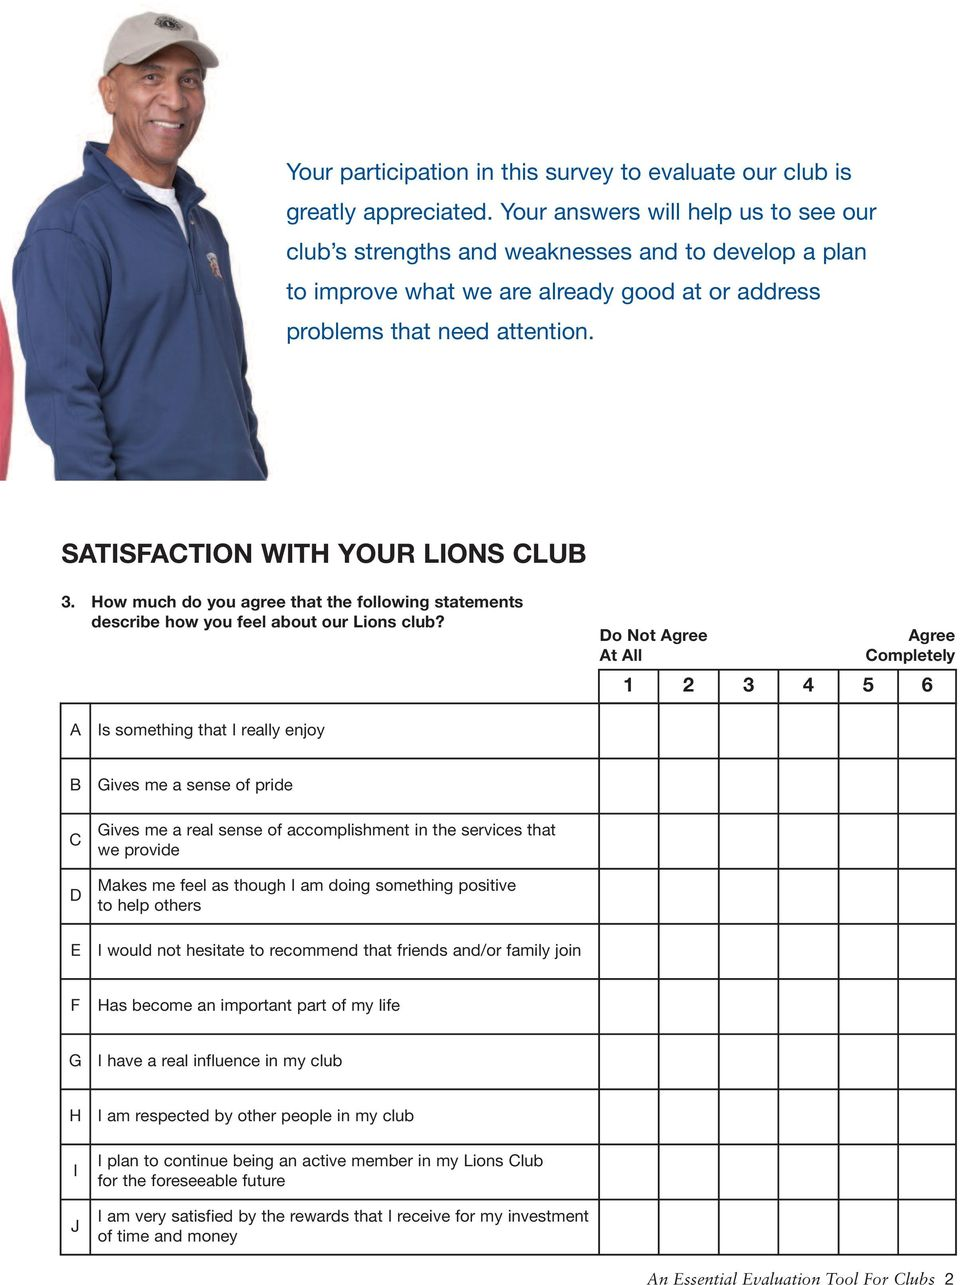 ow much do you agree that the following statements describe how you feel about our Lions club?